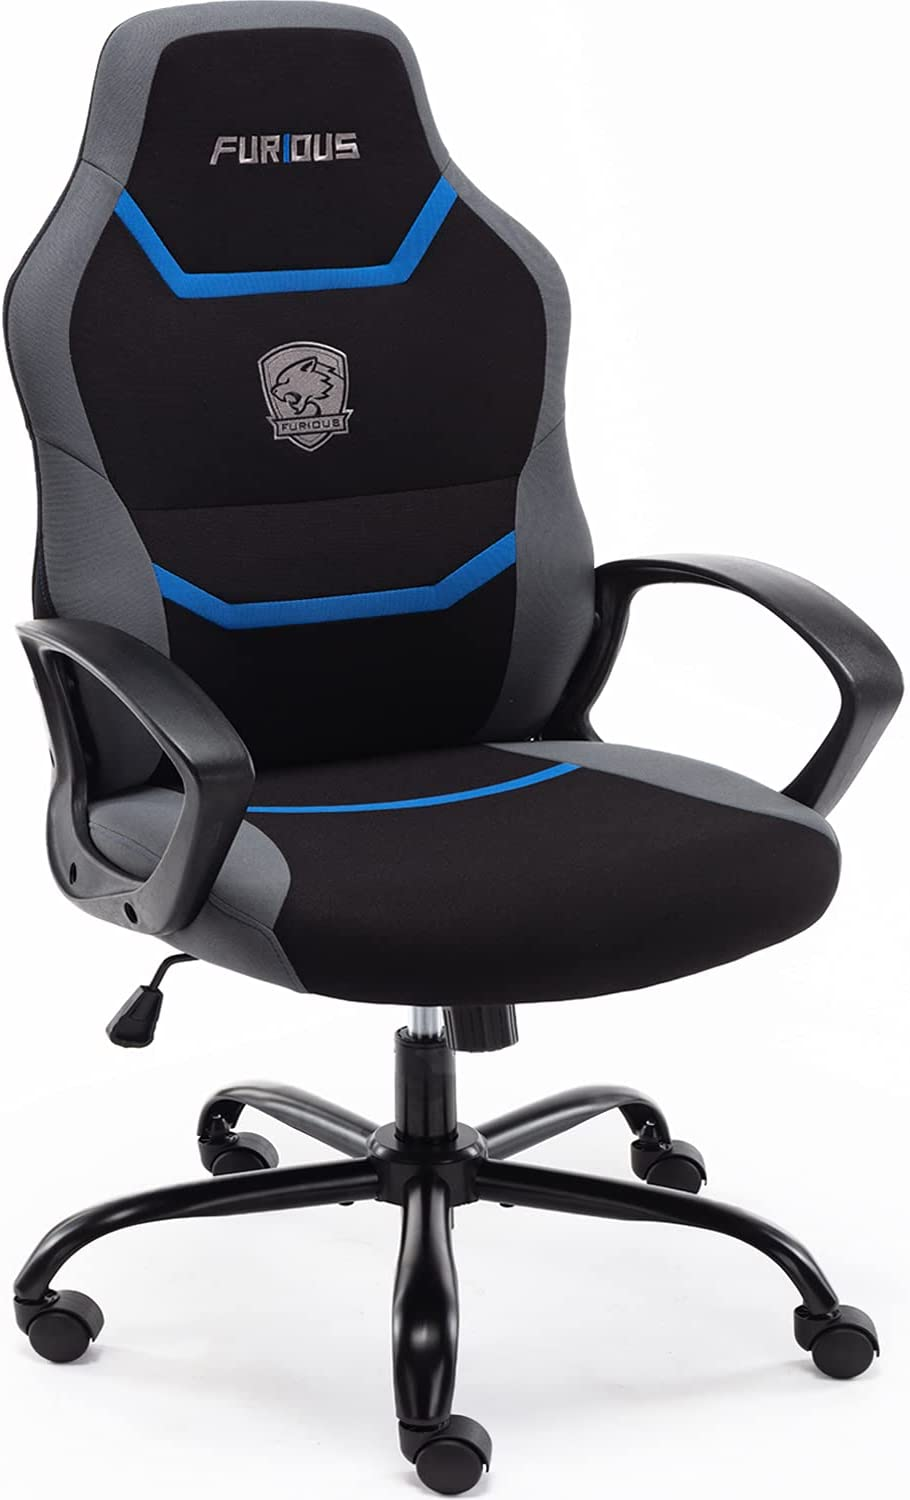 Furious Computer OFFicial site Gaming Chair Home with Desk Lumbar Office Max 59% OFF